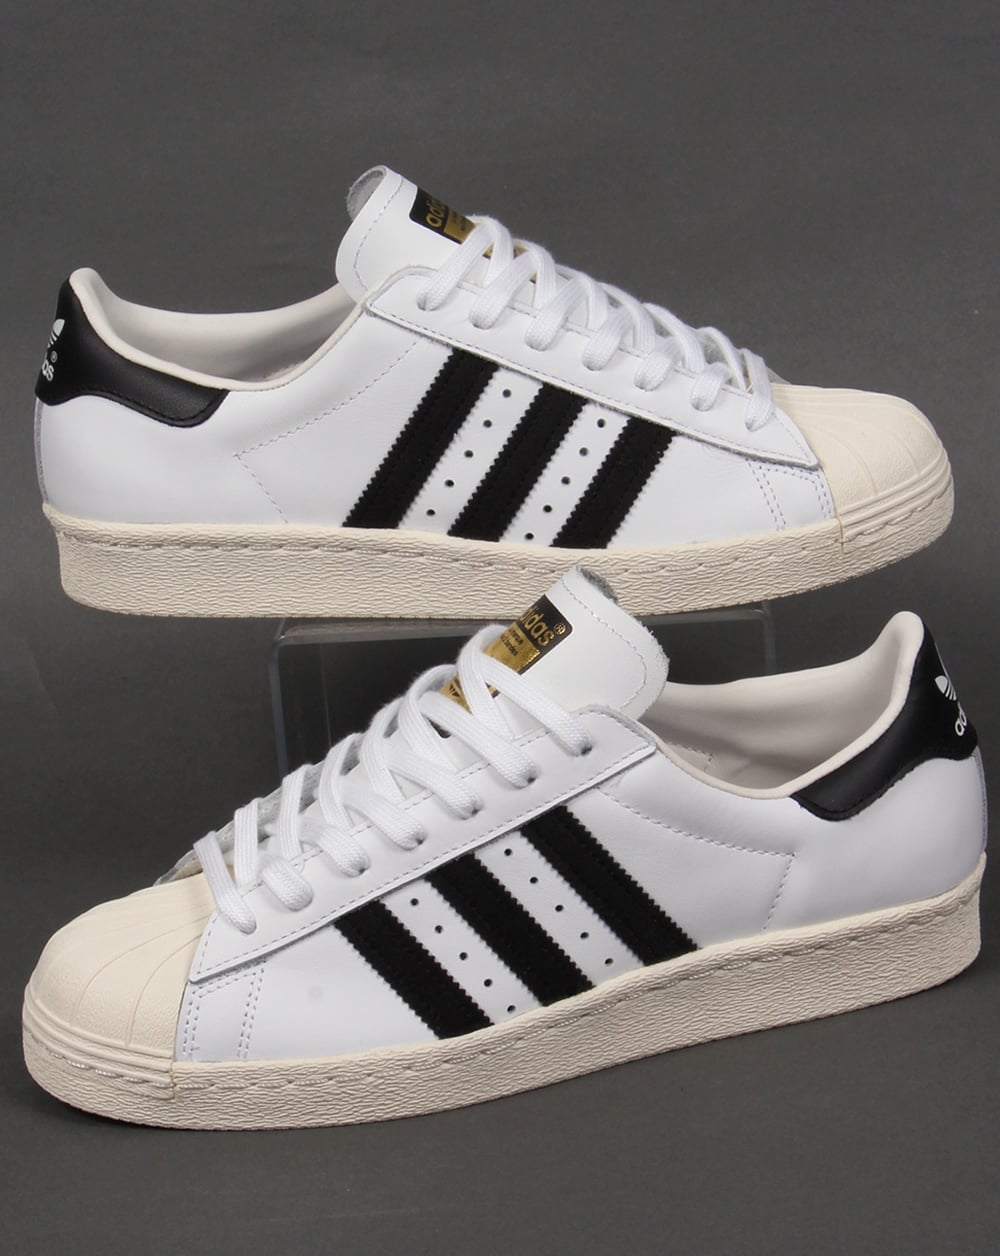 261fd22bf05 adidas Trainers Adidas Superstar 80s Trainers White Black